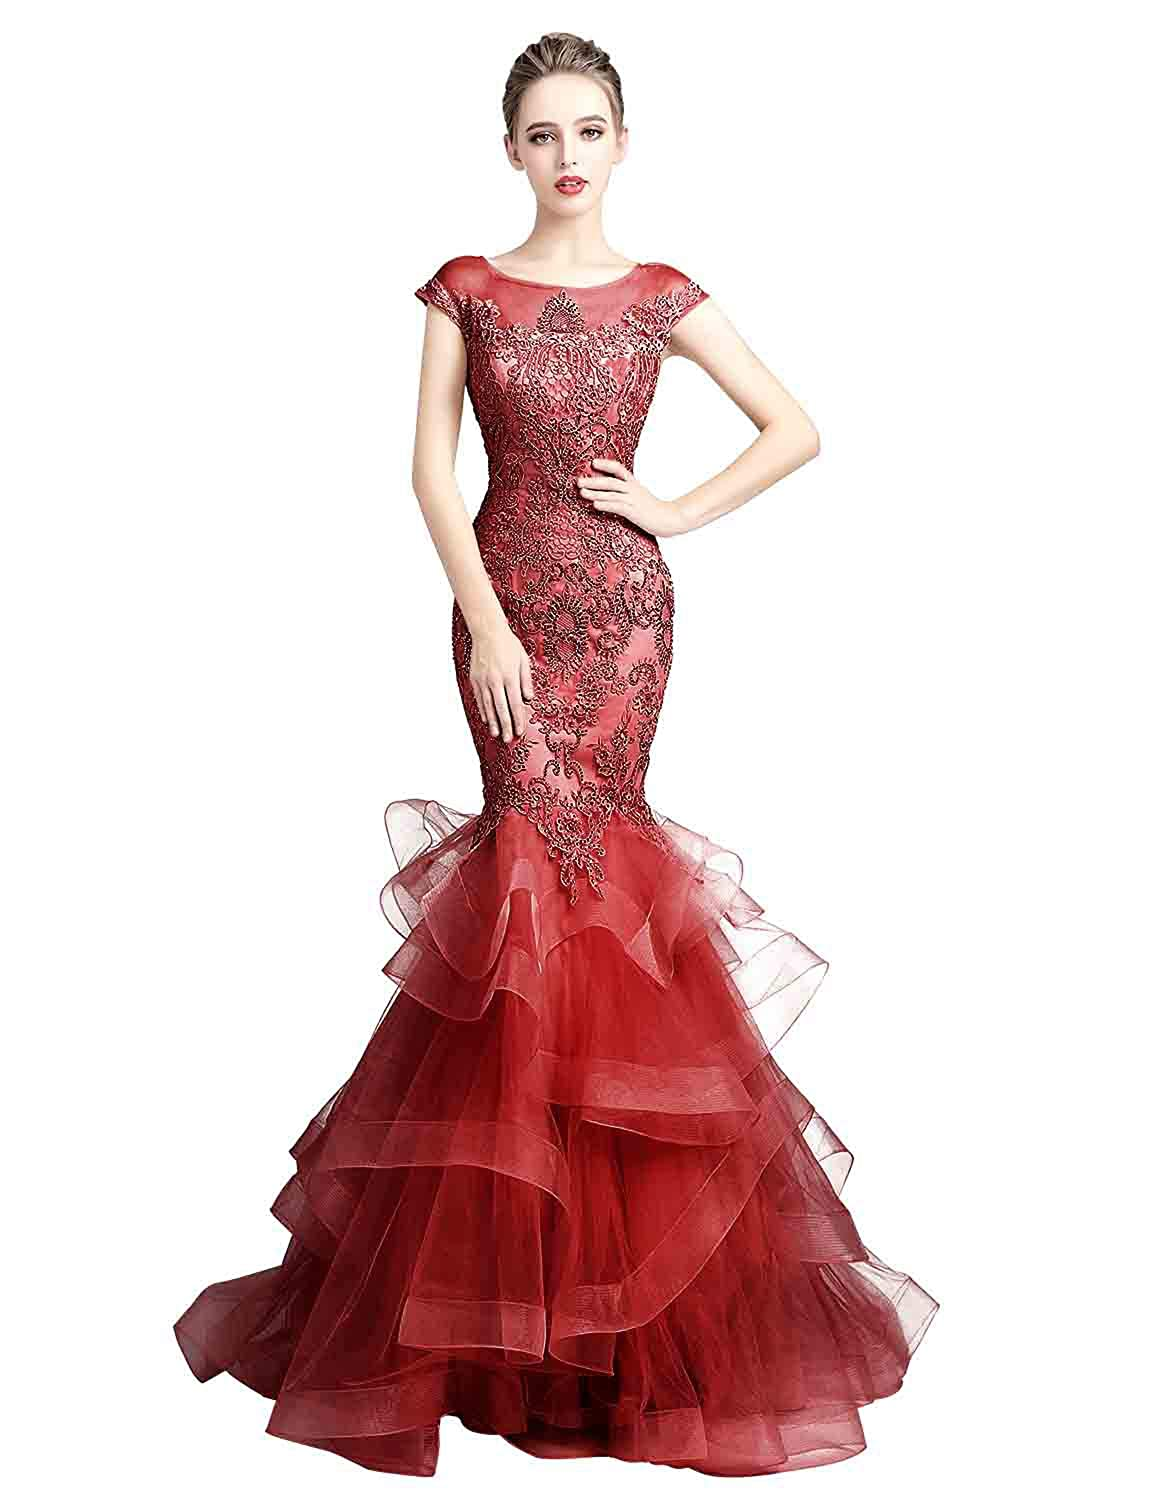 5135burgundy Sarahbridal Women's Tulle HiLow Beading Prom Dresses Evening Homecoming Cocktail Gowns